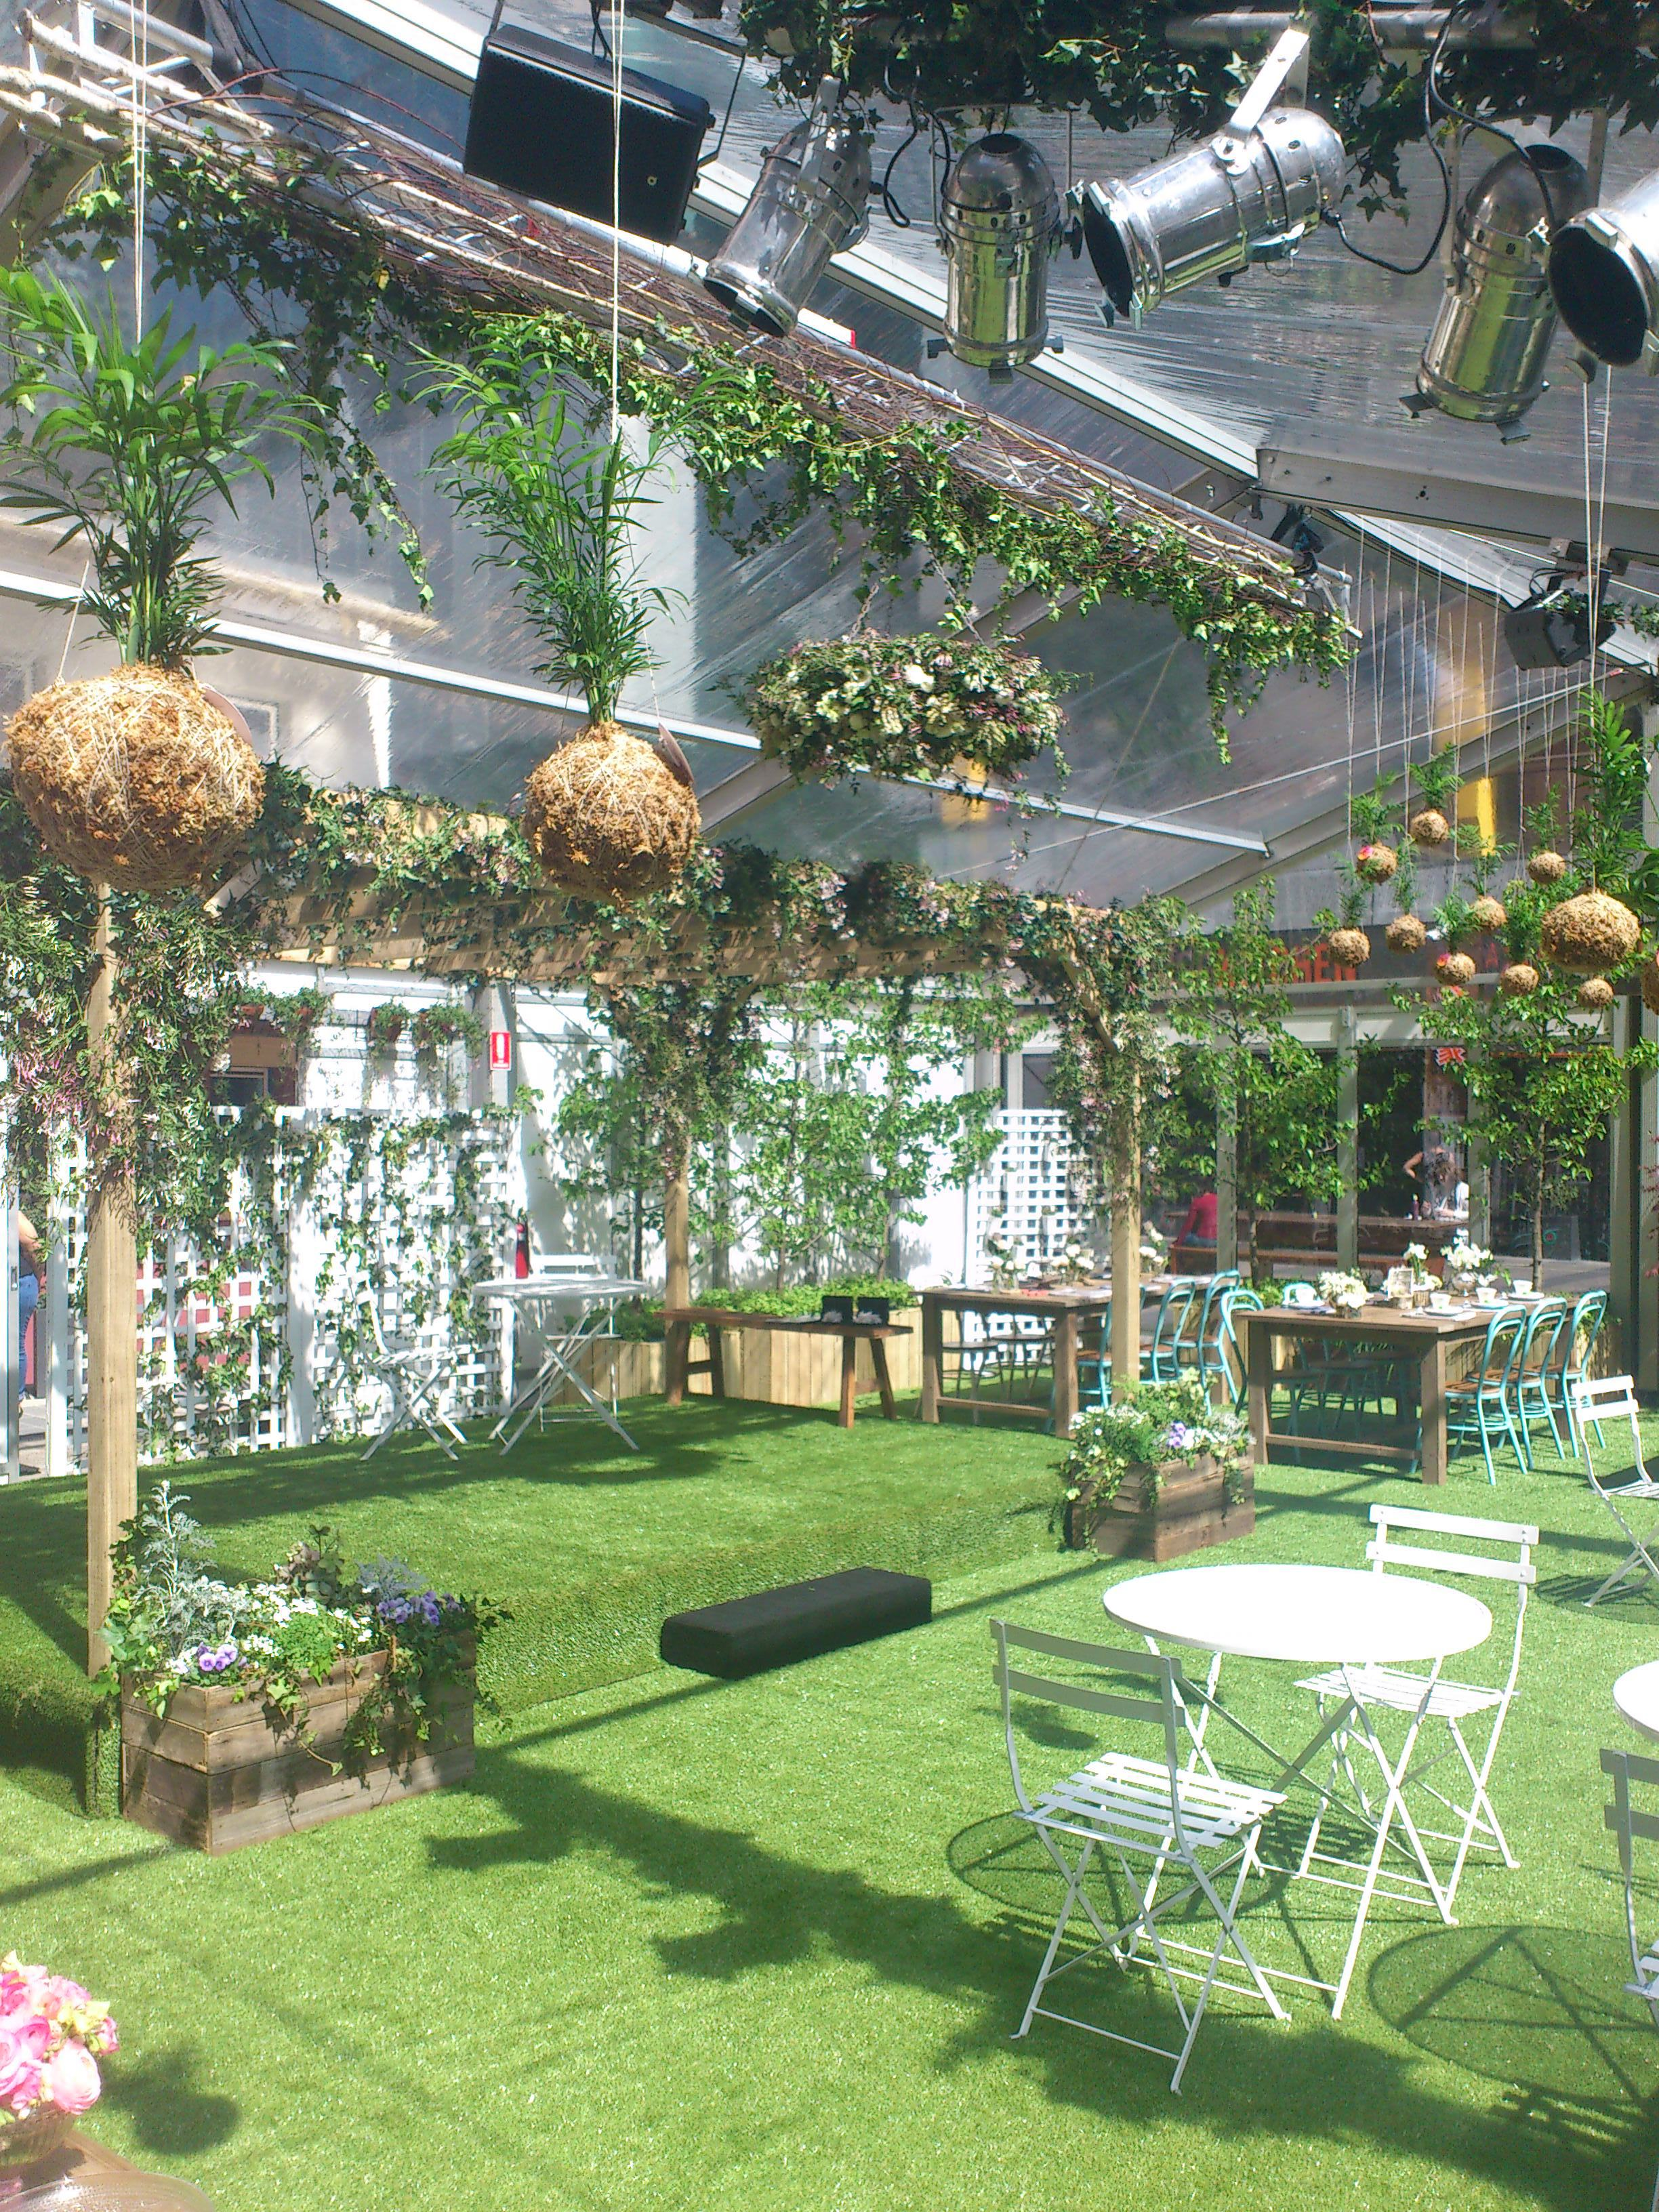 Qv spring glass house events high tea food cafe beauty fashion